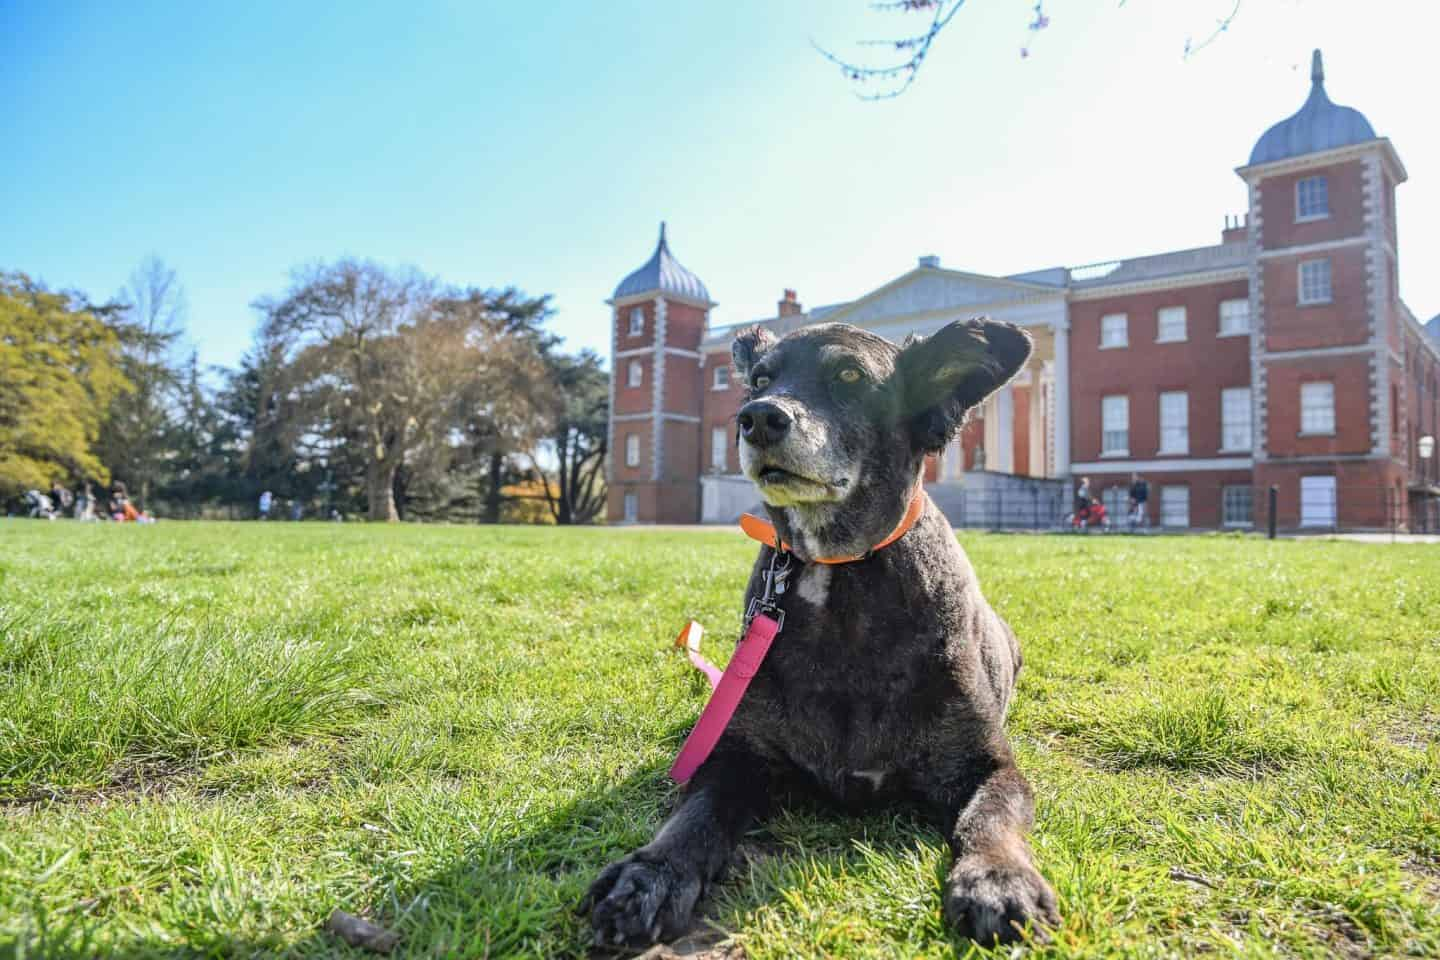 Dog-Friendly Osterley Park and House | A Dog's Day Out